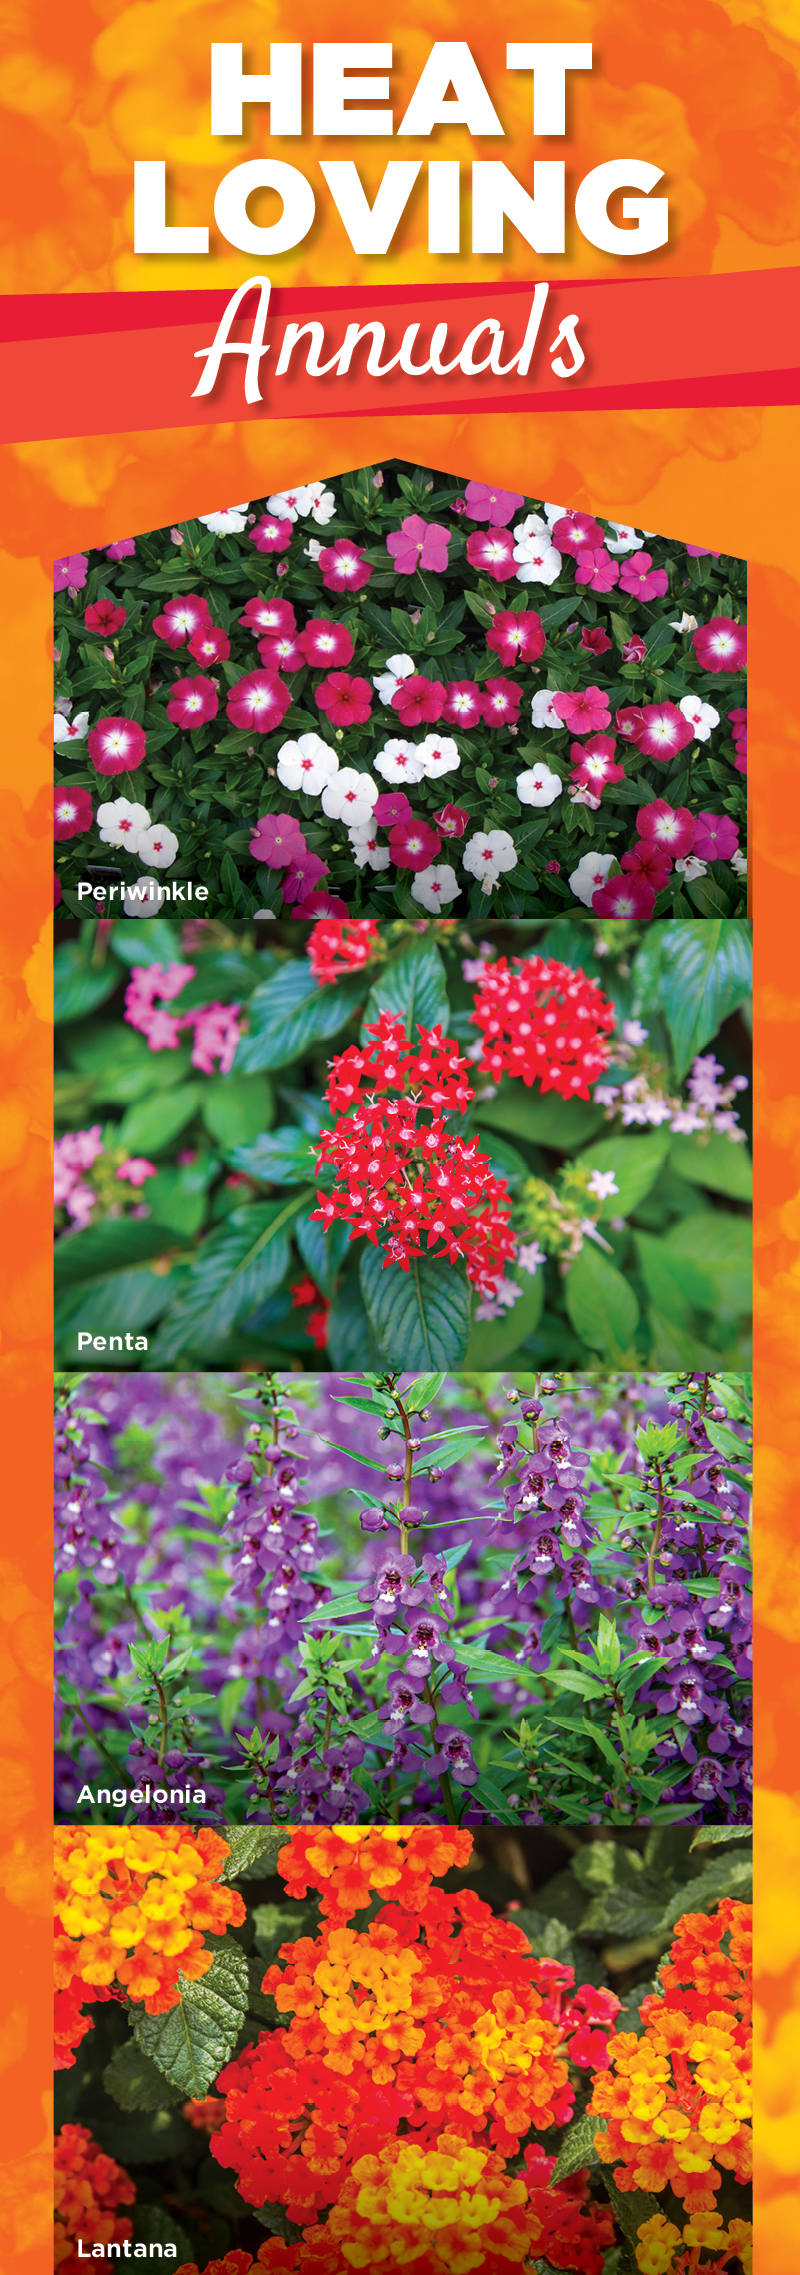 Heat Loving Annuals | TLC